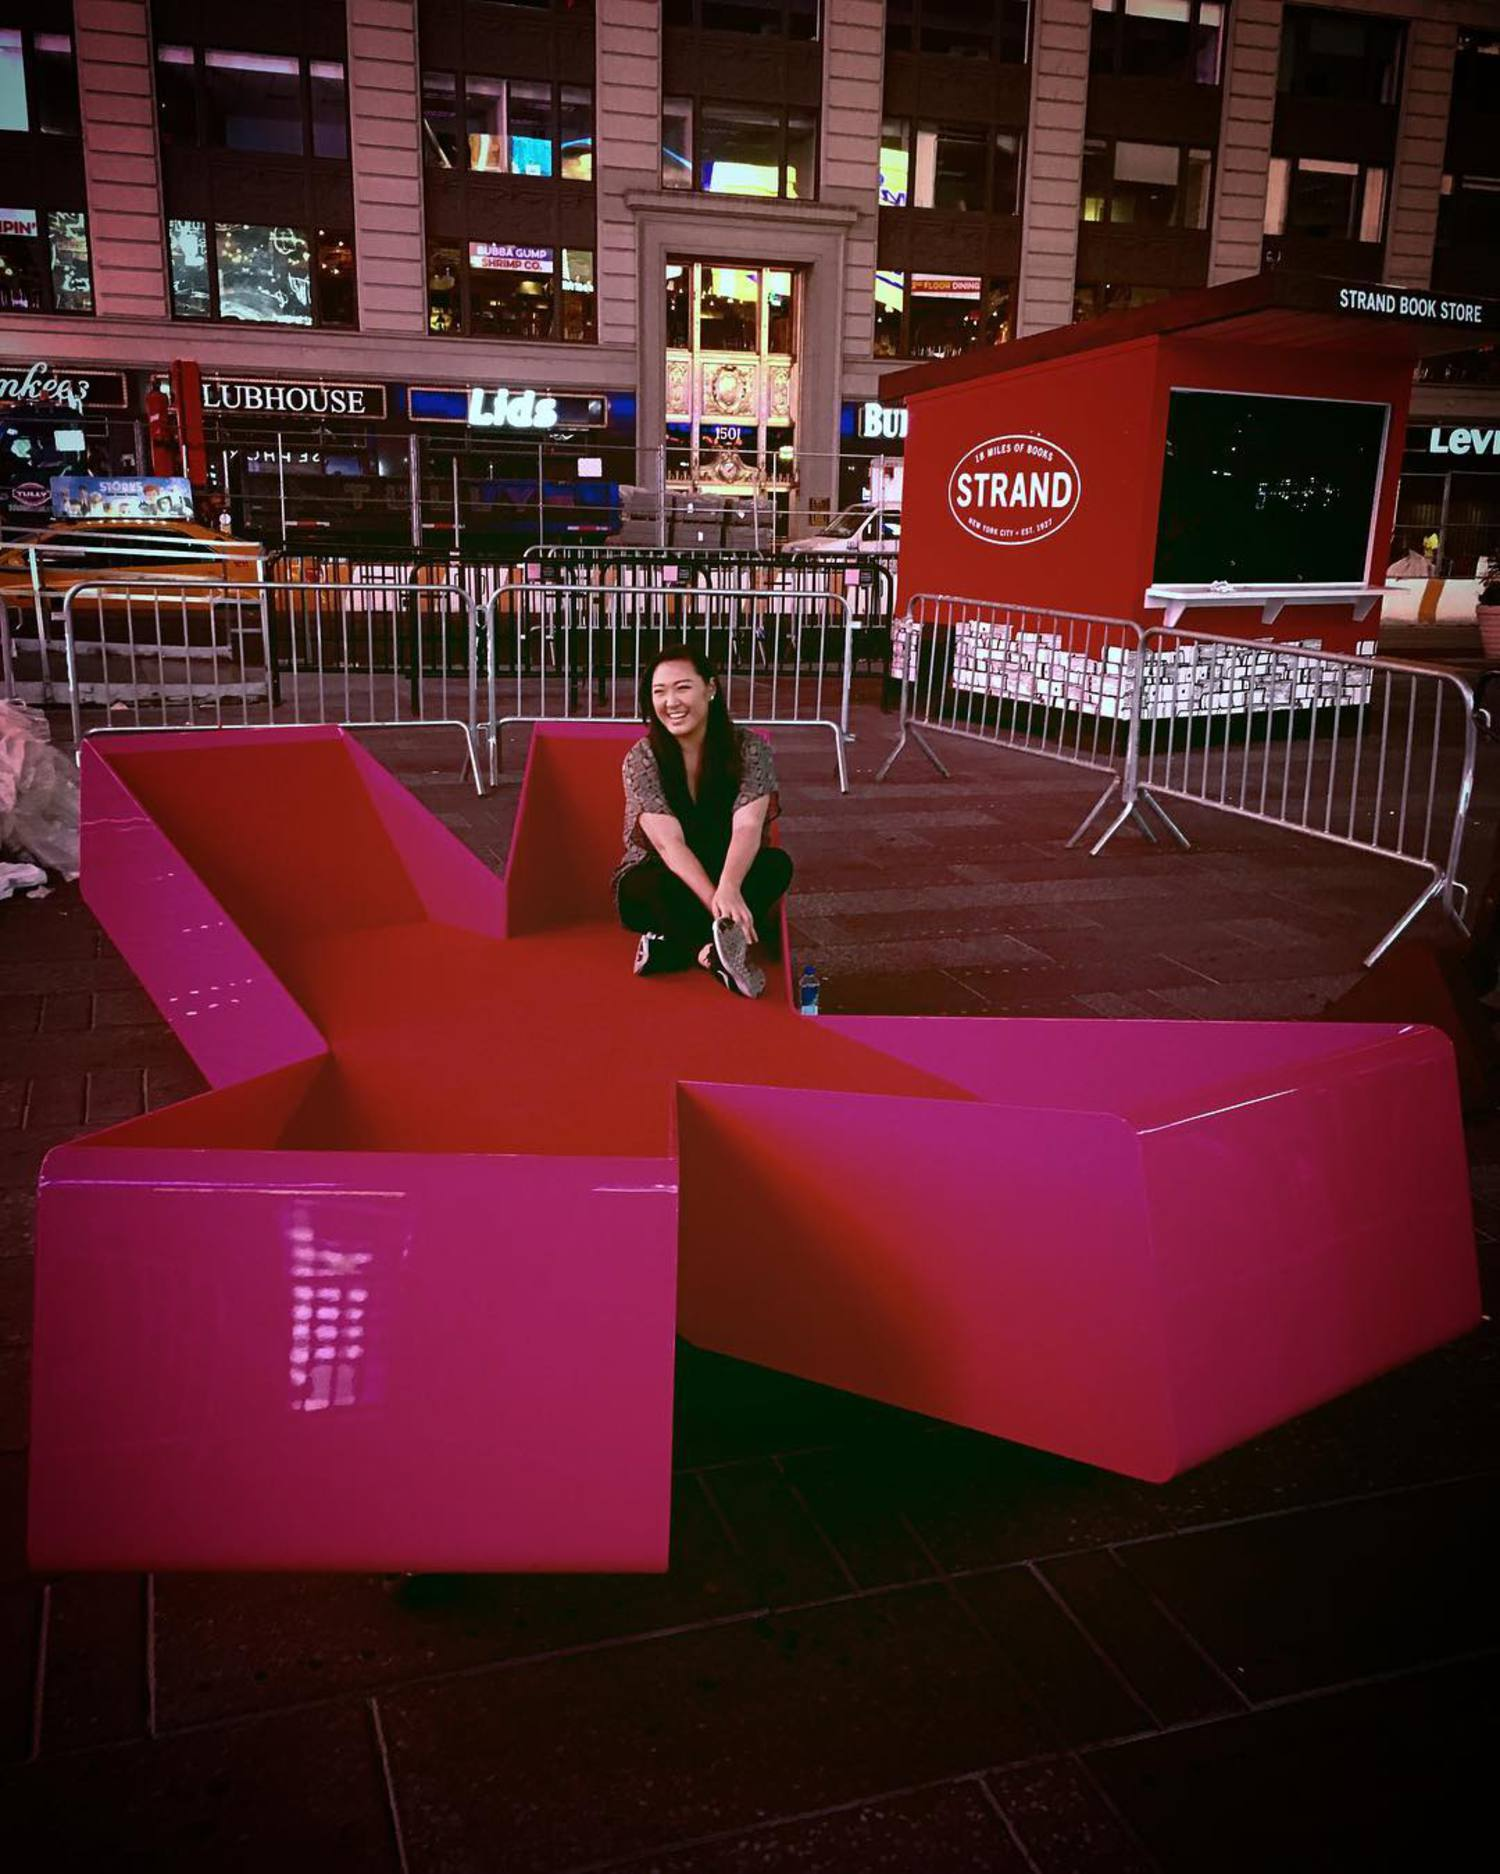 It's 3am and I'm sitting in a big pink X in the middle of #TimesSquare. #TSqXXX @tsqarts